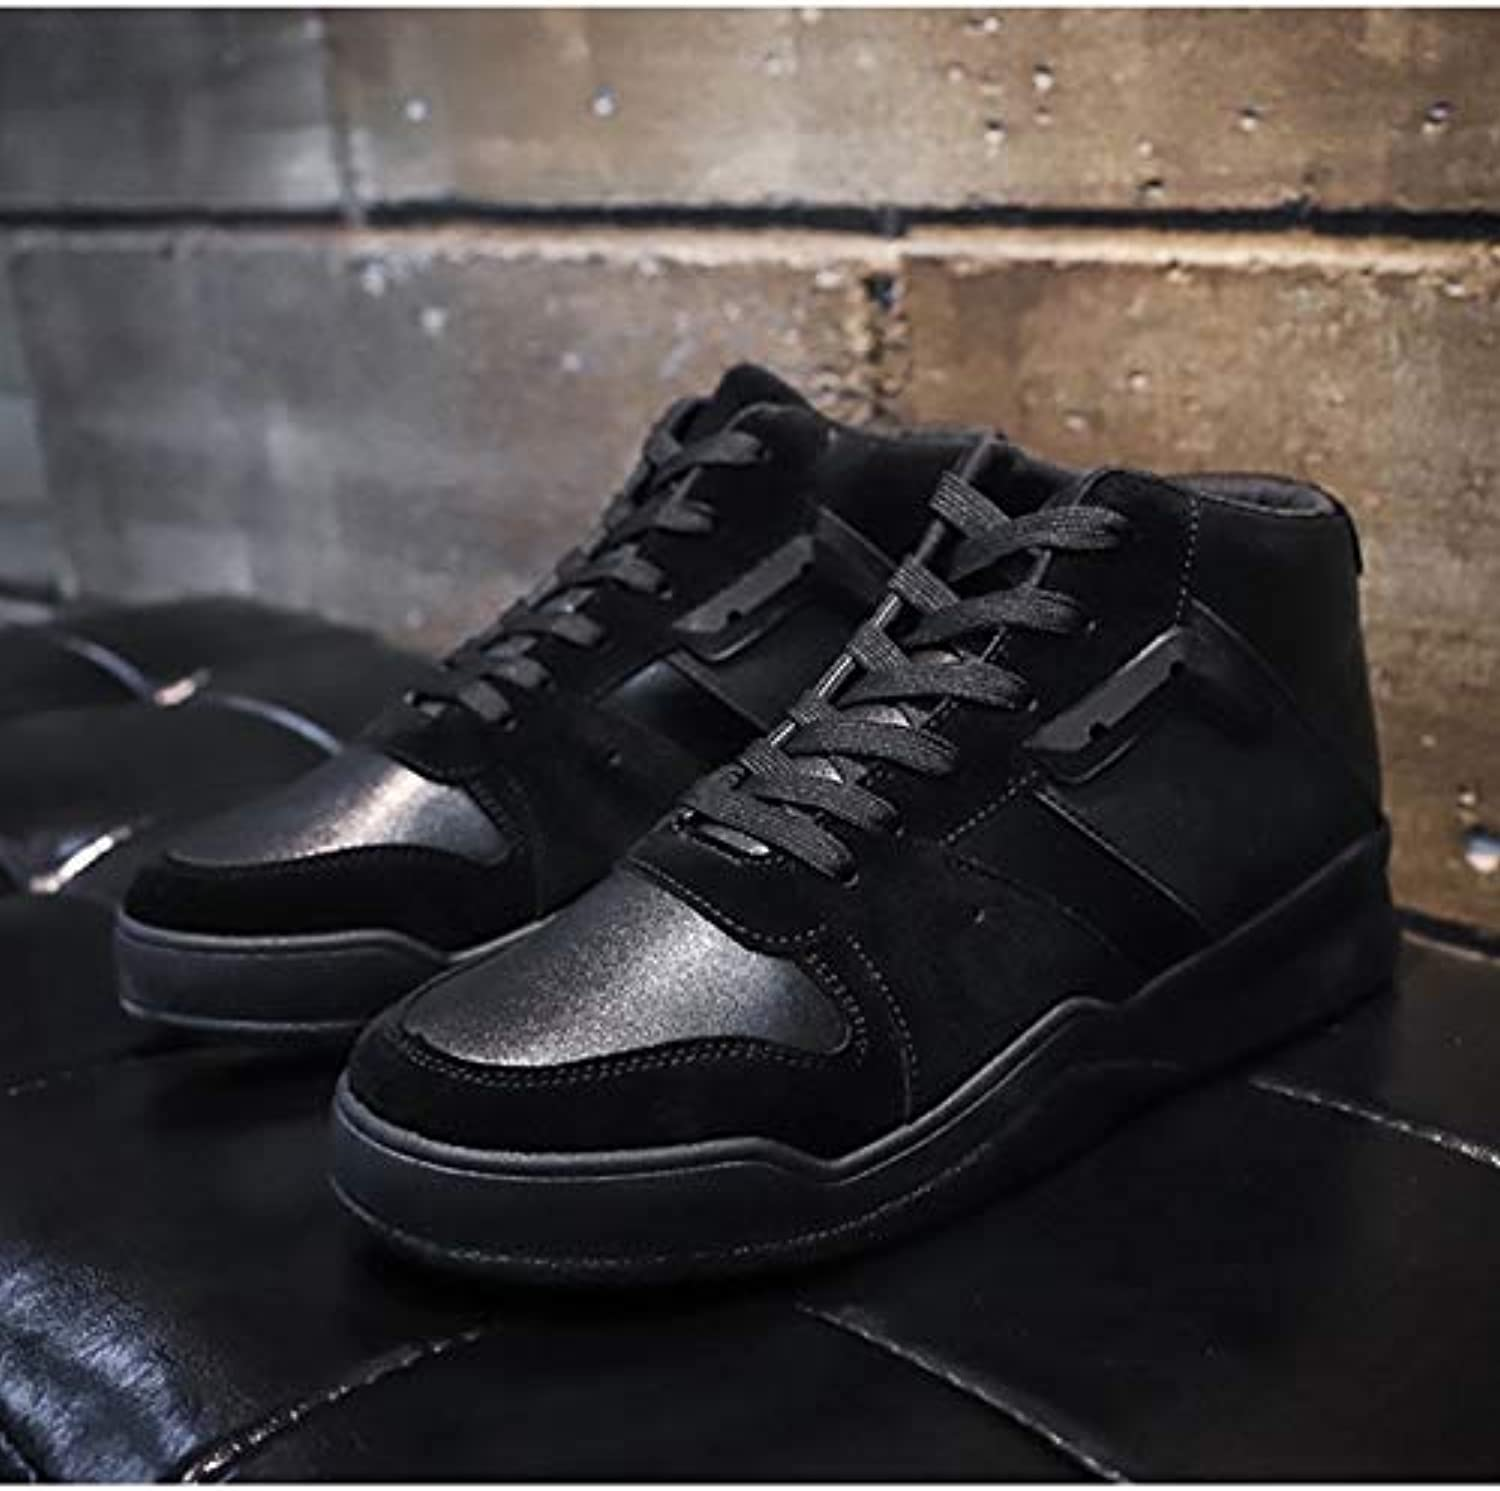 Anstorematealliance Outdoor&Sports shoes Trendy Lace-up High Casual shoes for Men (color Black Size 39)